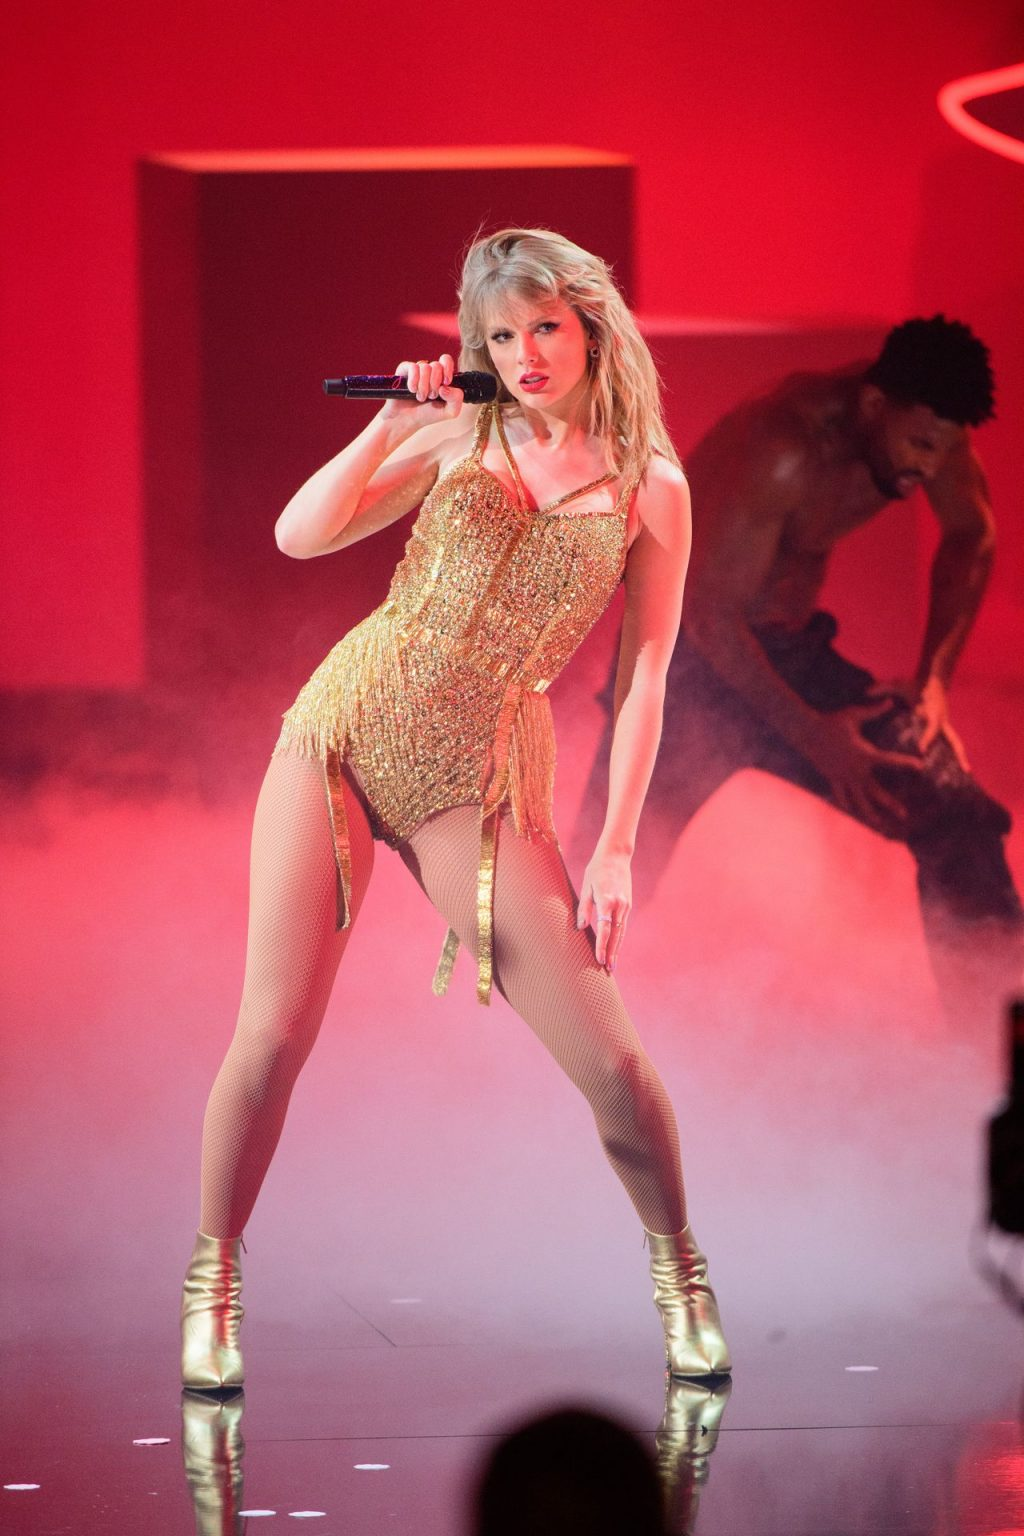 Taylor Swift Sexy (134 Photos)